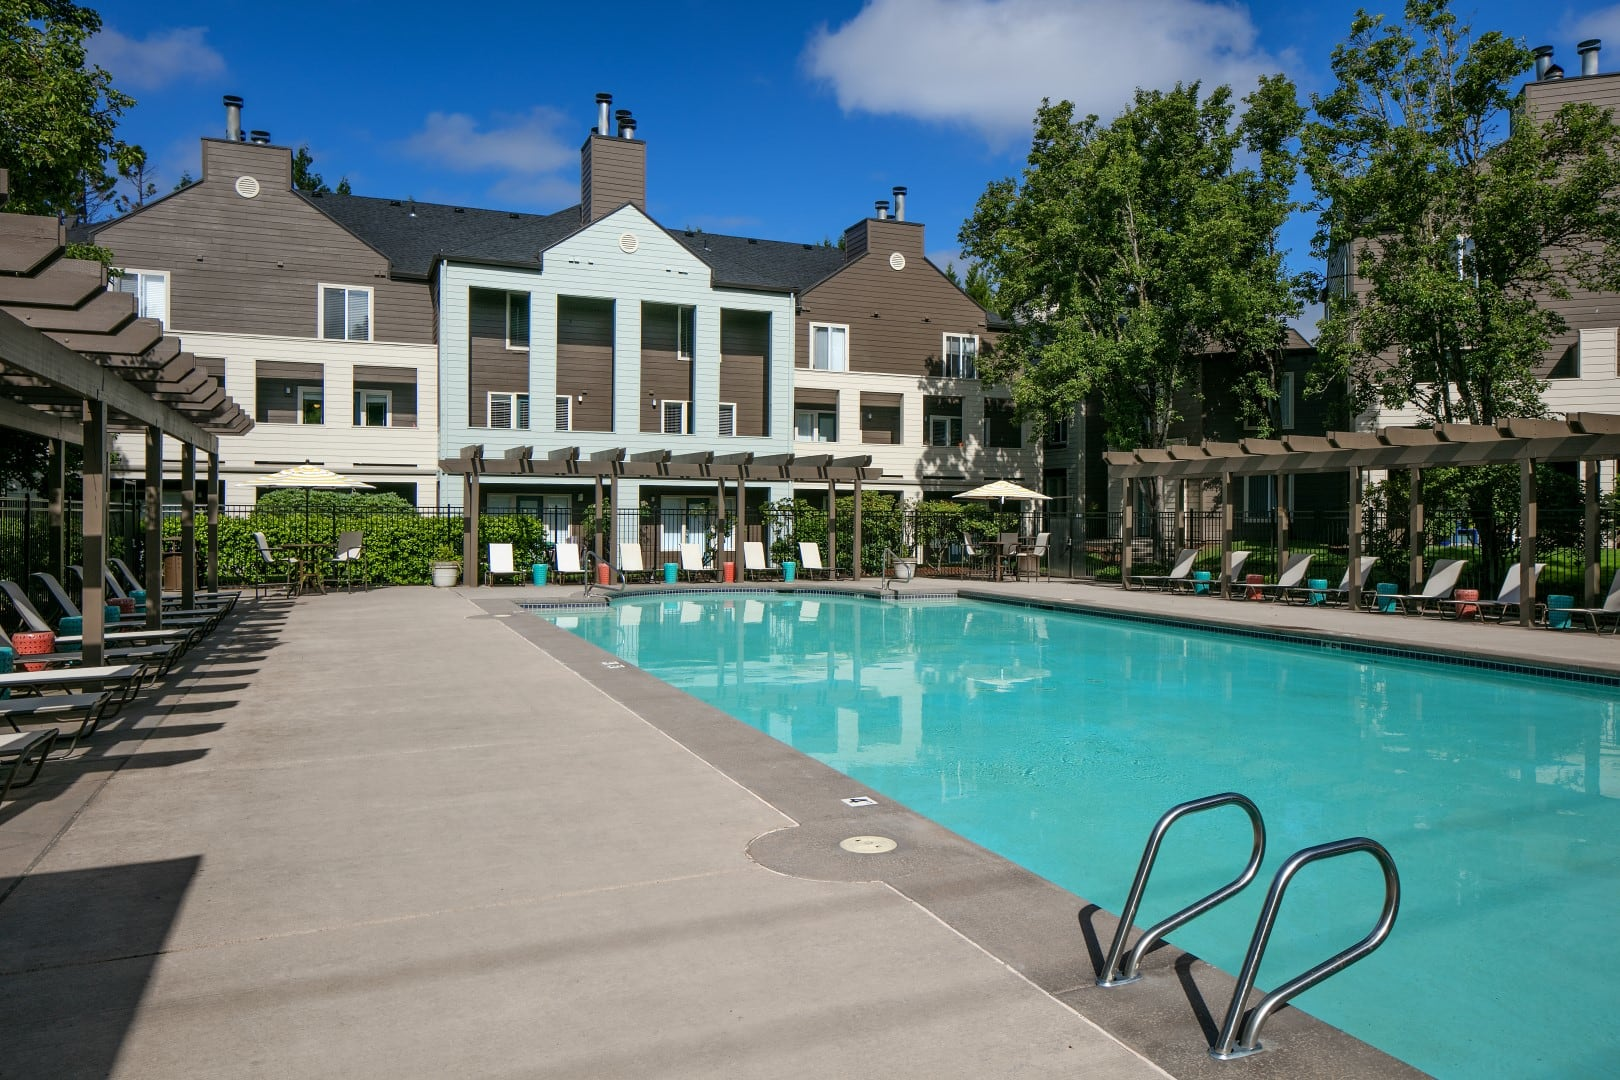 See what we have to offer by visiting Waterhouse Place's amenities page.